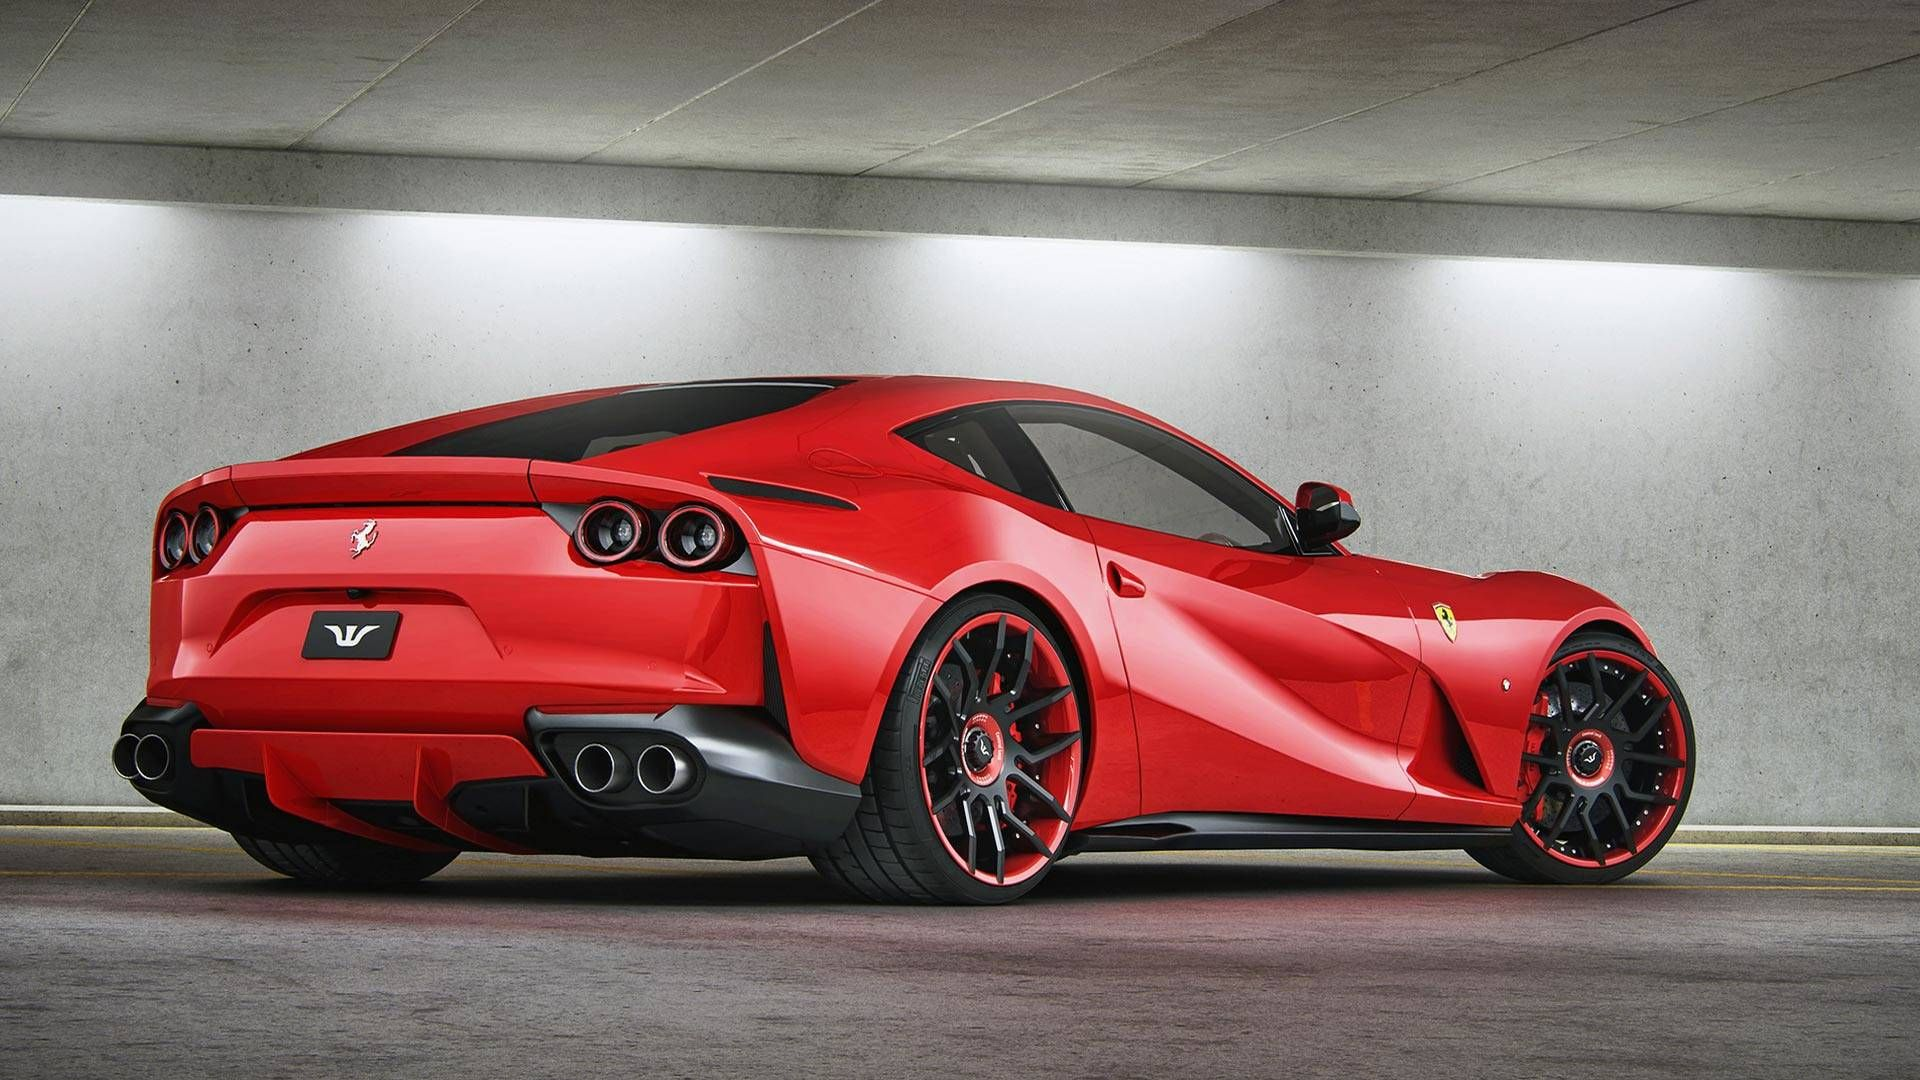 Ferrari 812 Superfast The Fastest And Most Powerful Ferrari Yet